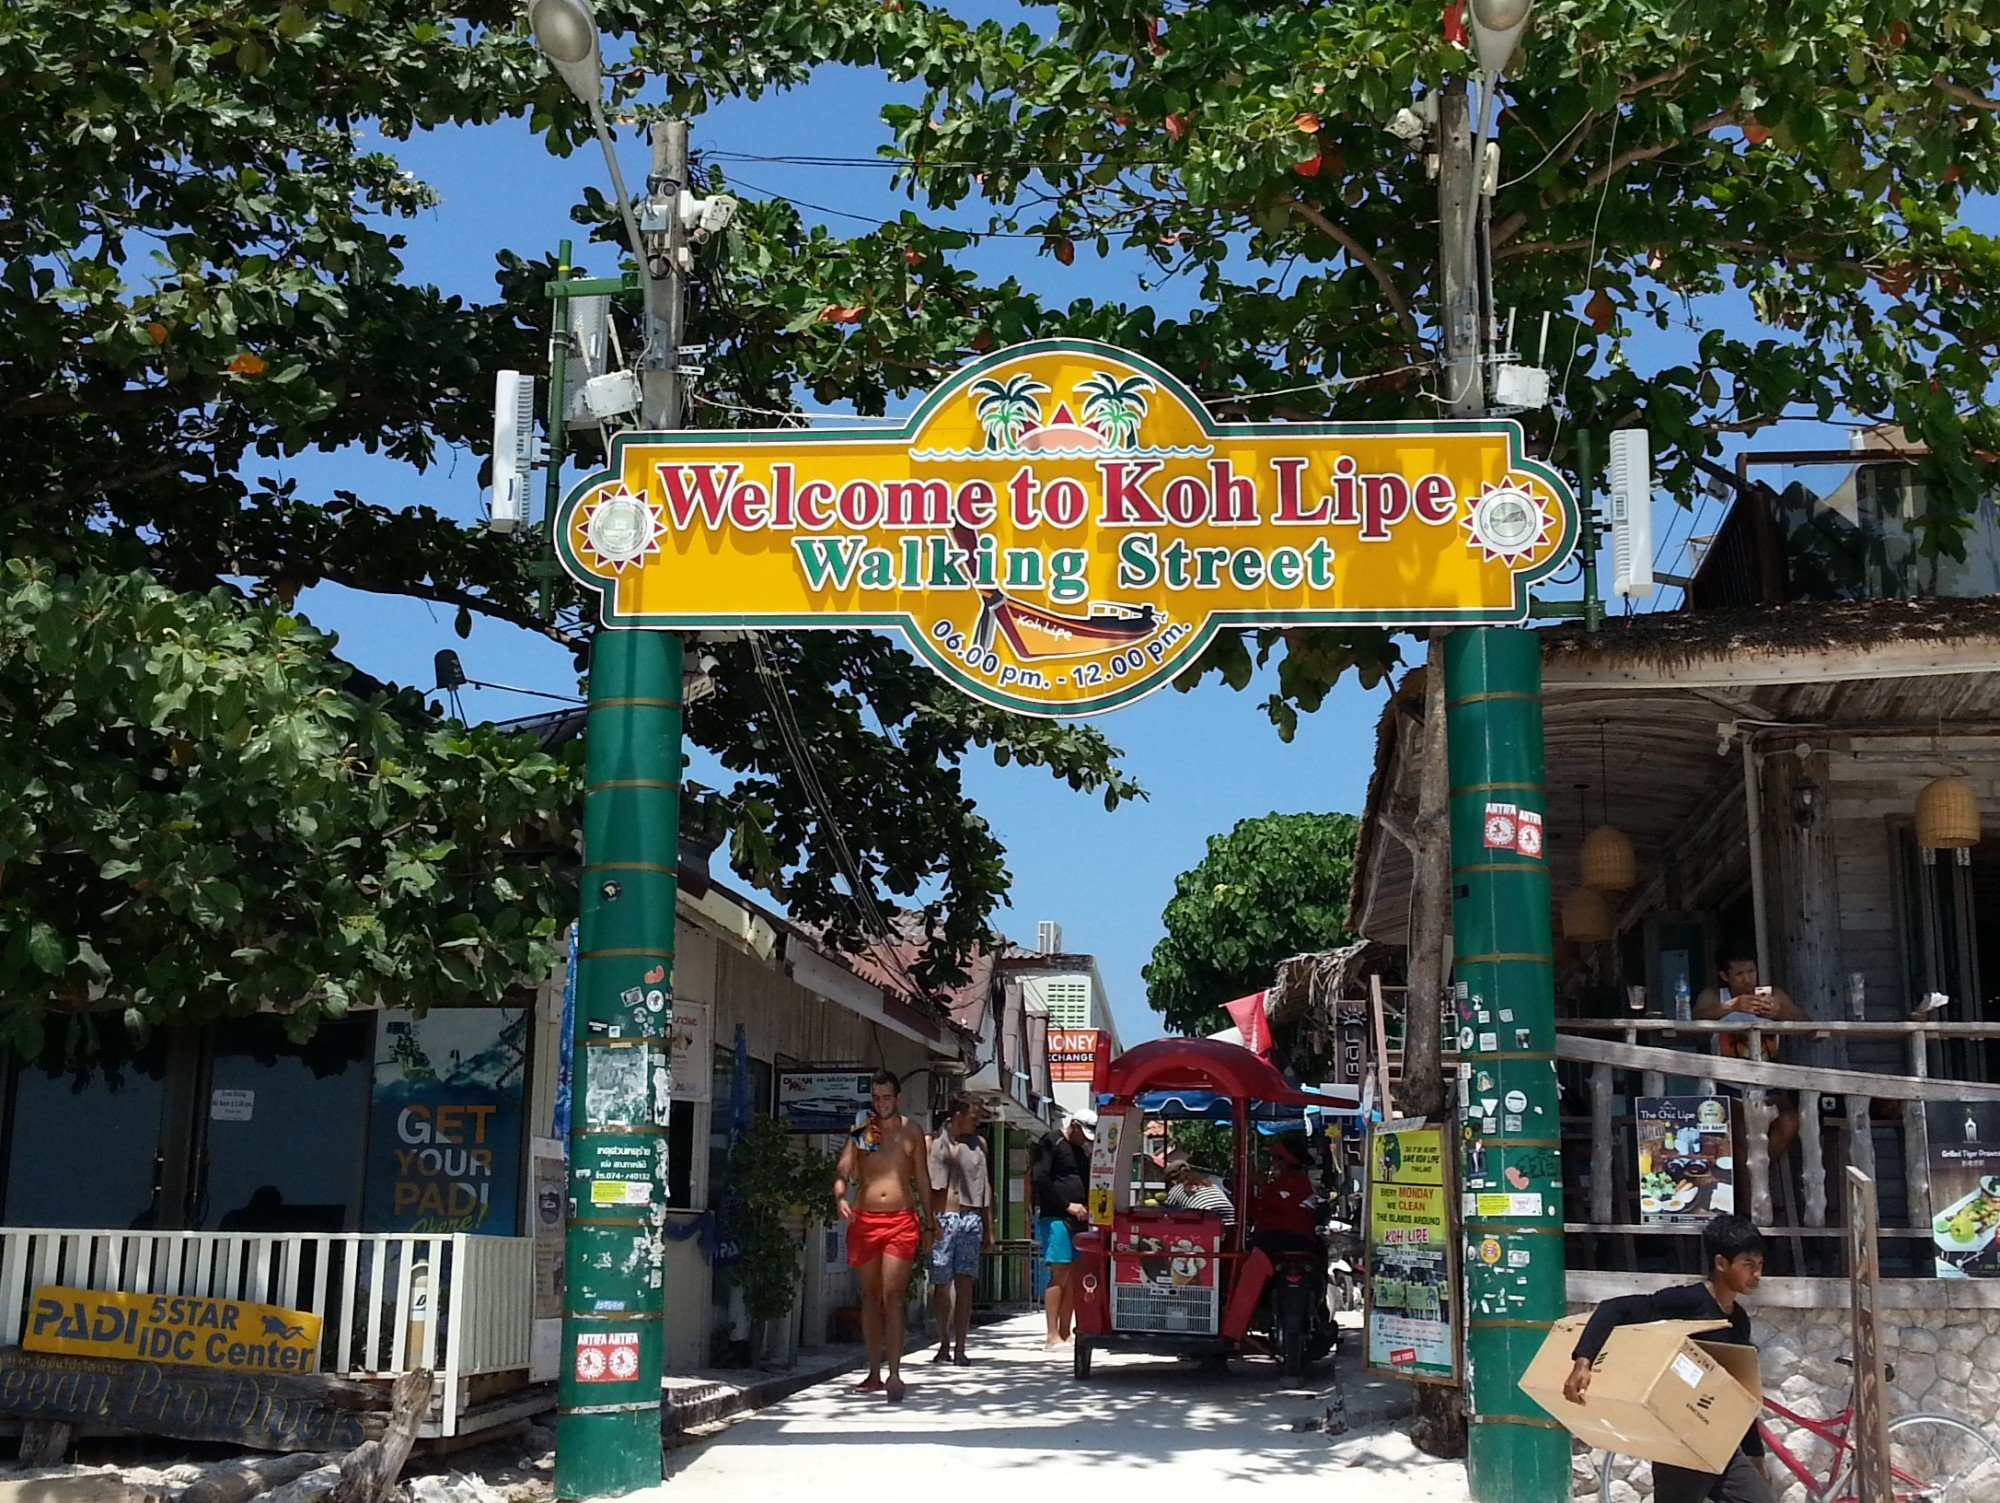 Walking Street in Koh Lipe